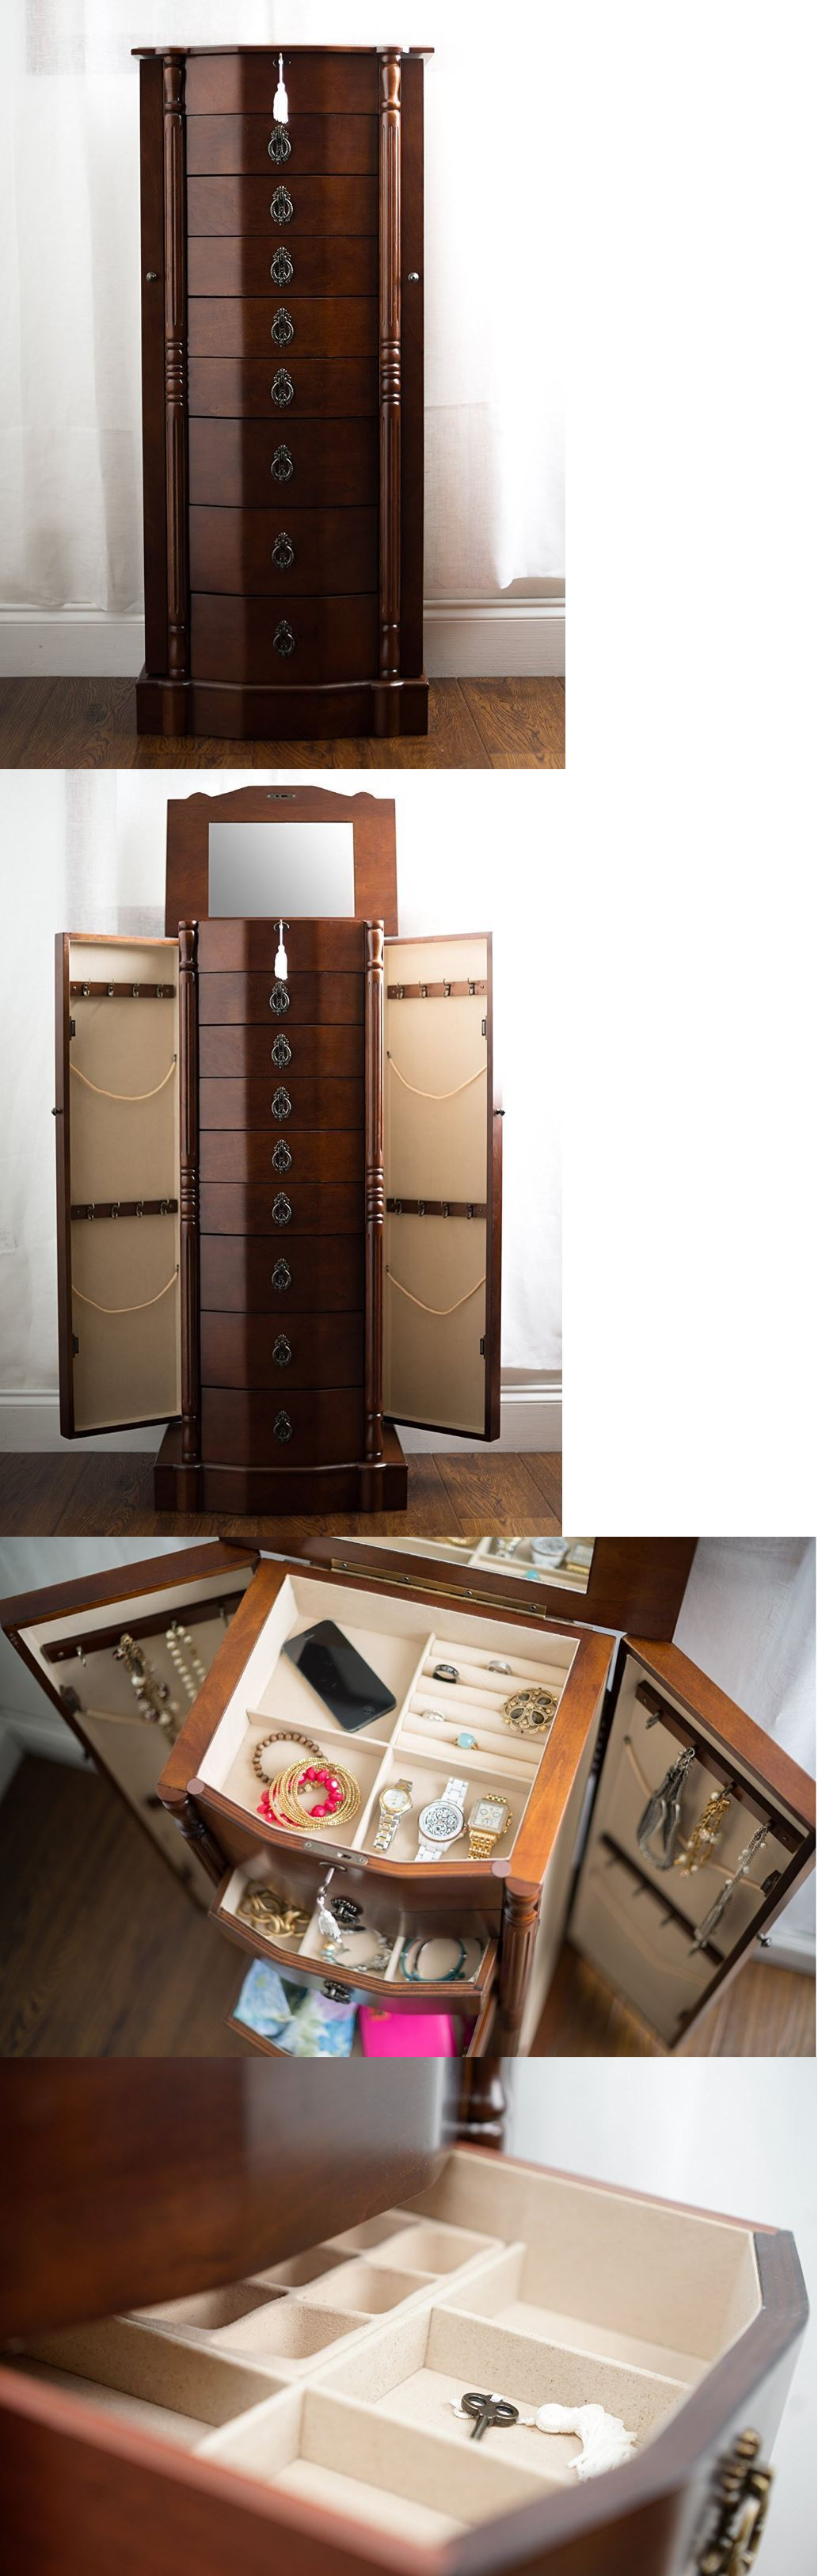 Jewelry Boxes 3820: Mirrored Jewelry Armoire Stand Up Box Tall Storage Stand Organizer Necklace Ring BUY IT NOW ONLY: $298.99